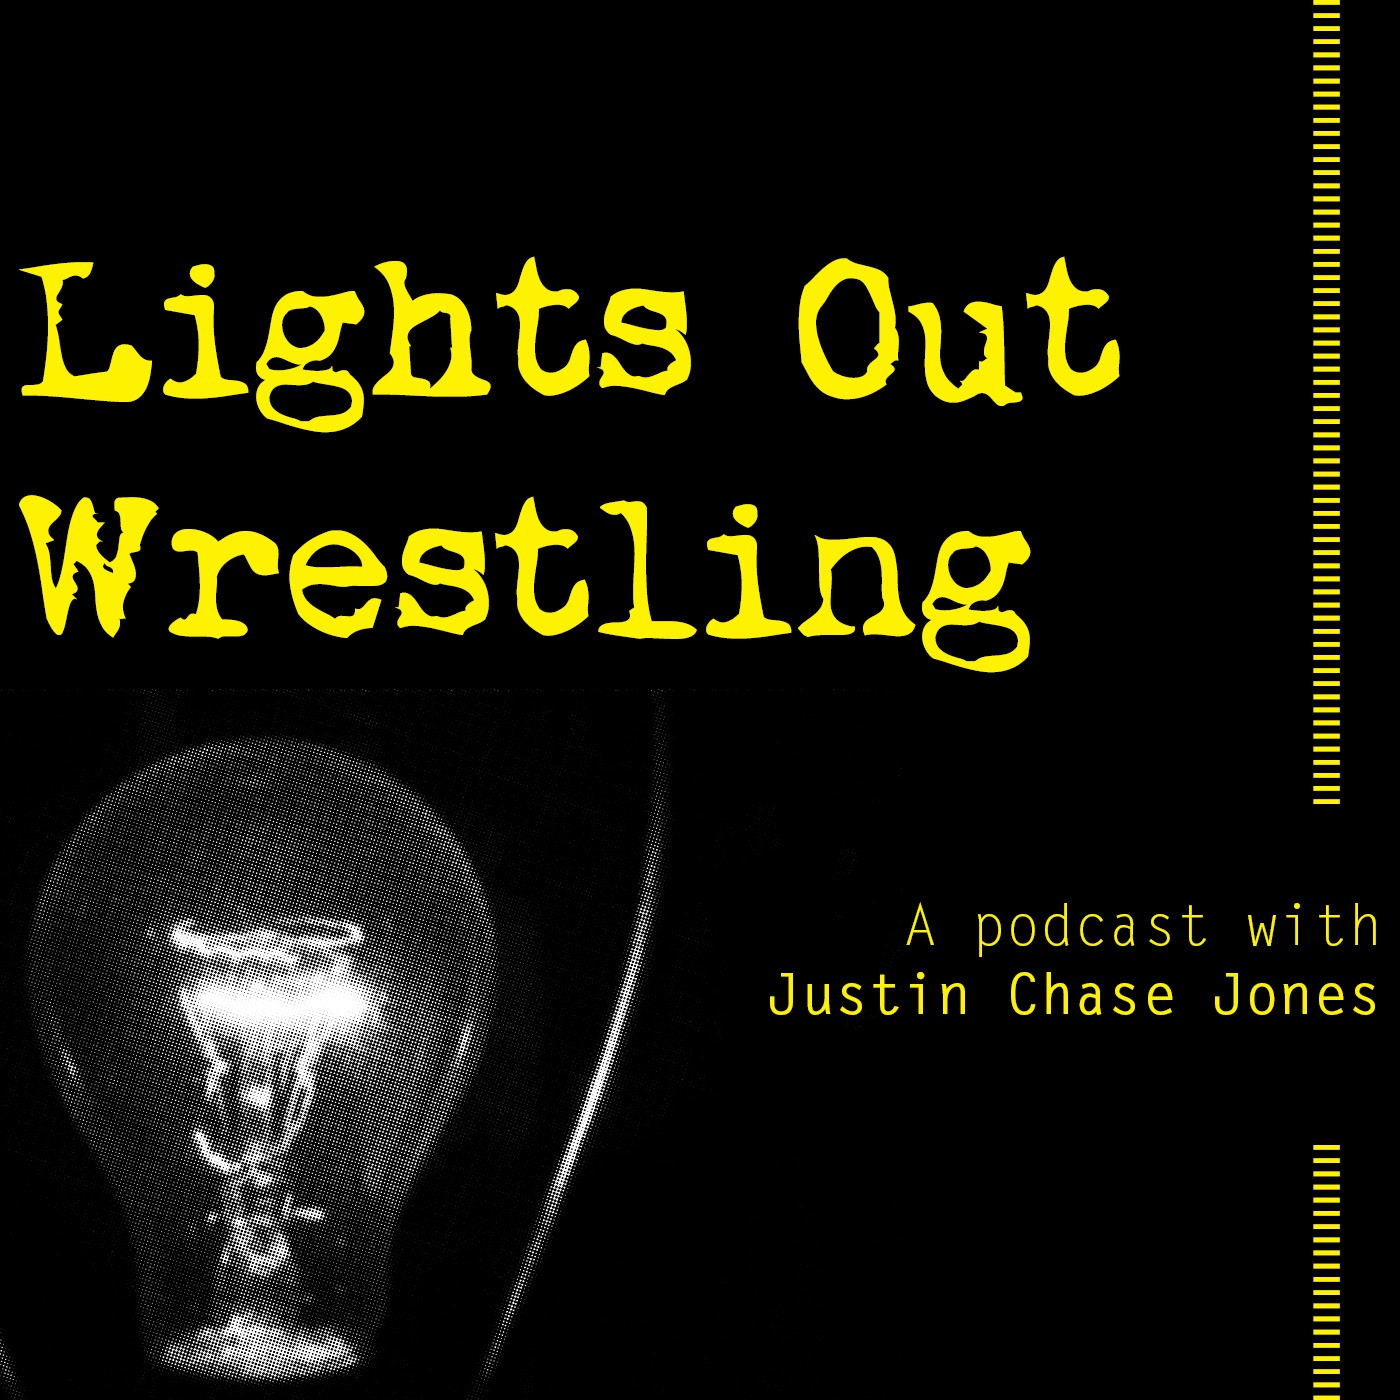 Lights Out Wrestling